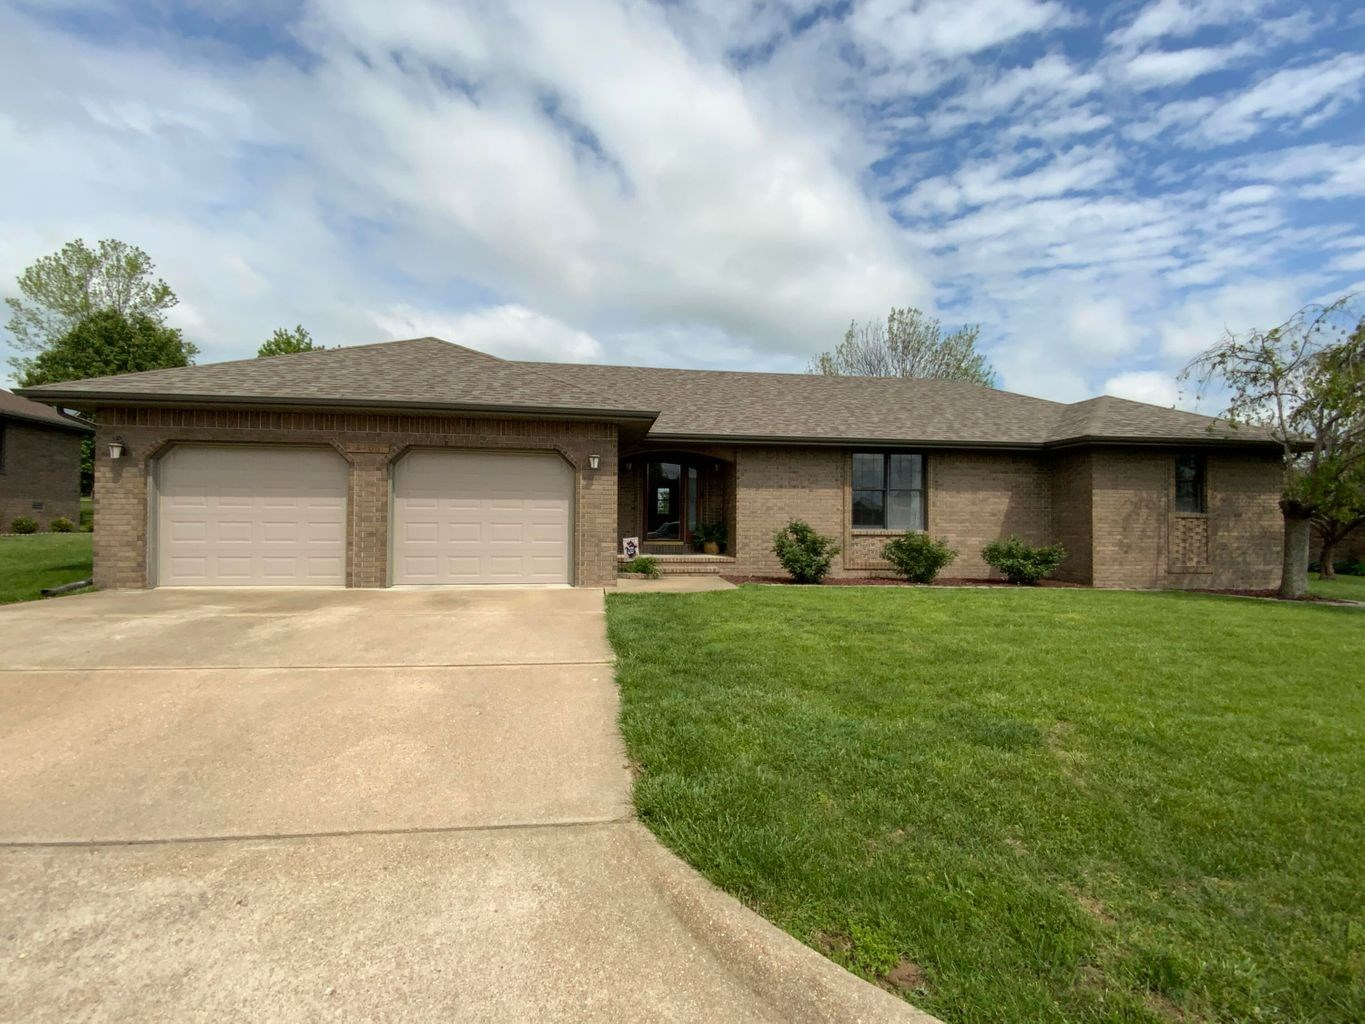 Brick Home in Town for Sale in South Central Missouri Ozarks